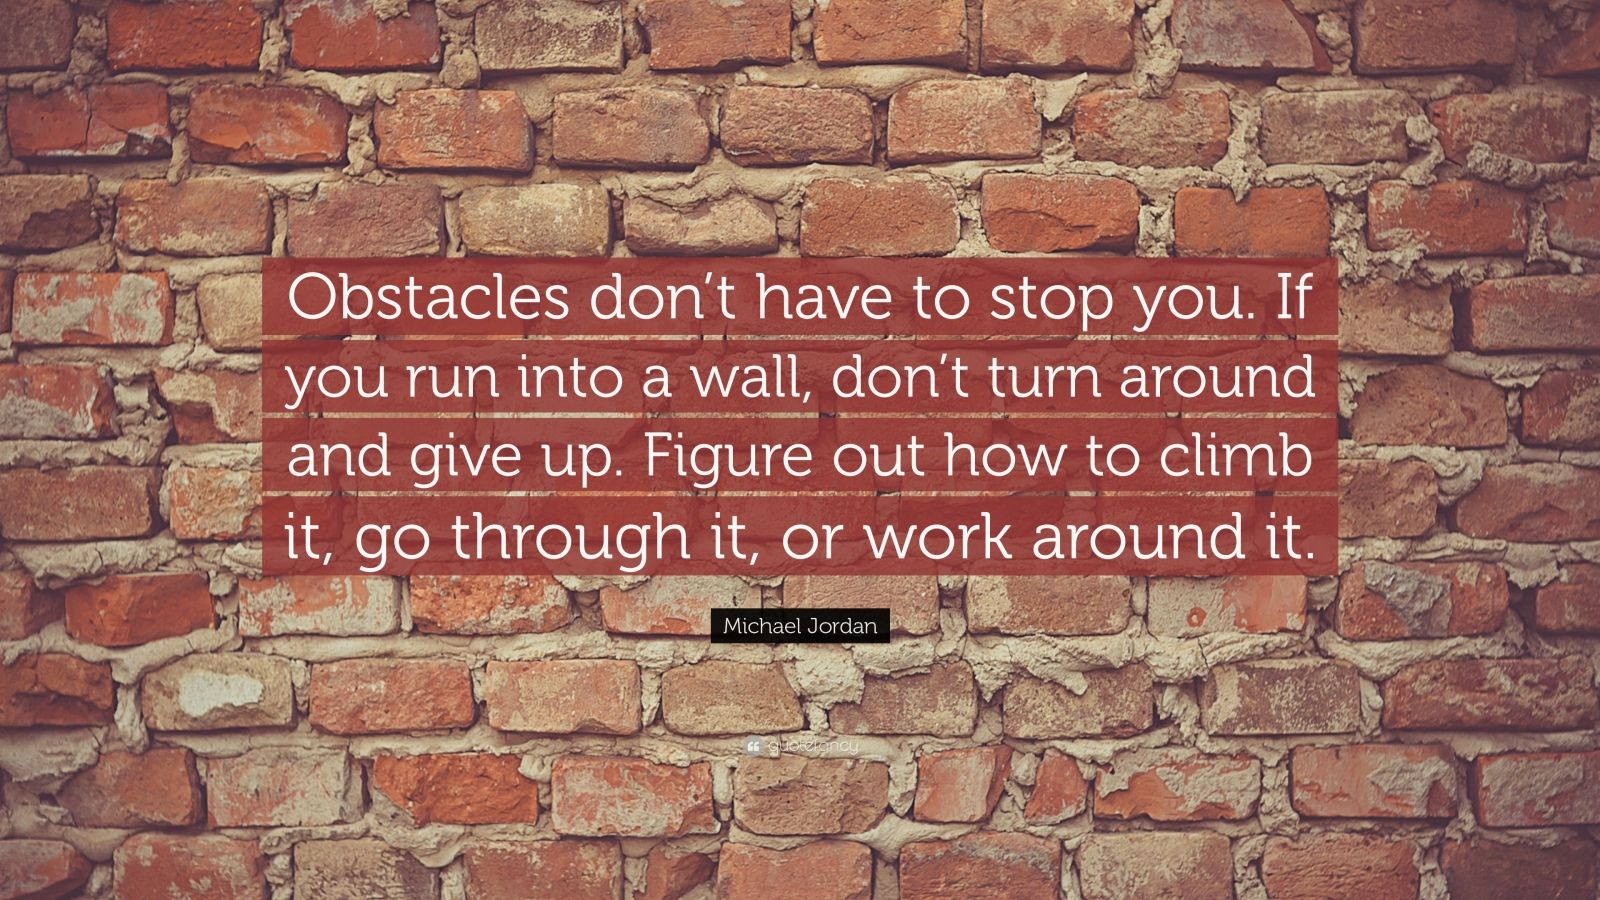 """Michael Jordan Quote: """"Obstacles don't have to stop you. If you run into a wall, don't turn around and give up. Figure out how to climb it, go through it, or work around it."""""""